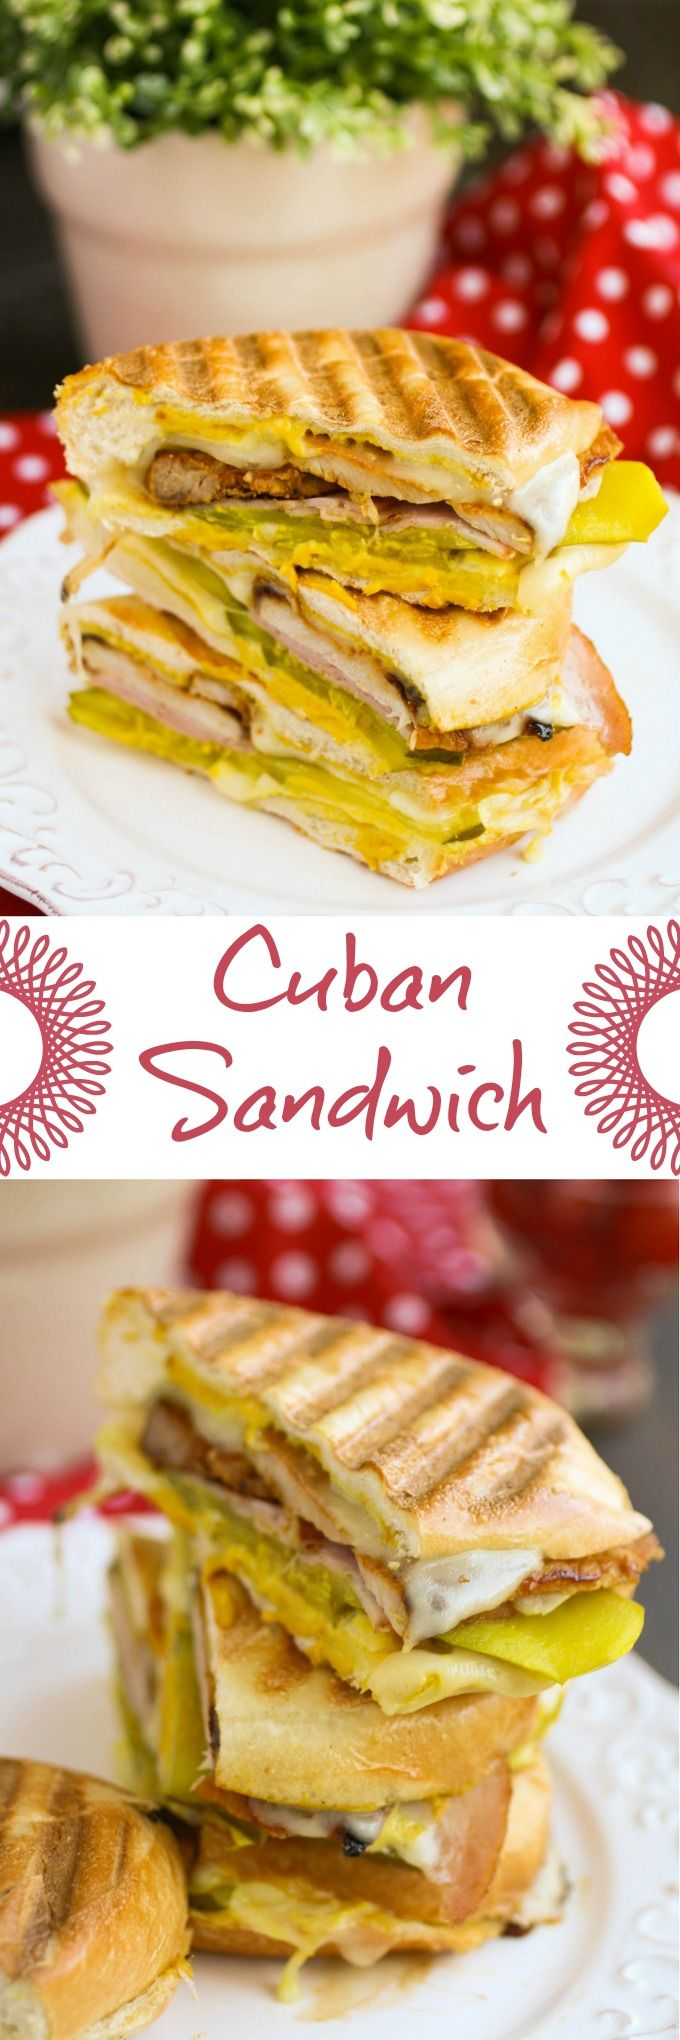 A Cuban sandwich is a treat for lunch or dinner! Big flavor meets heartiness in this classic sandwich!